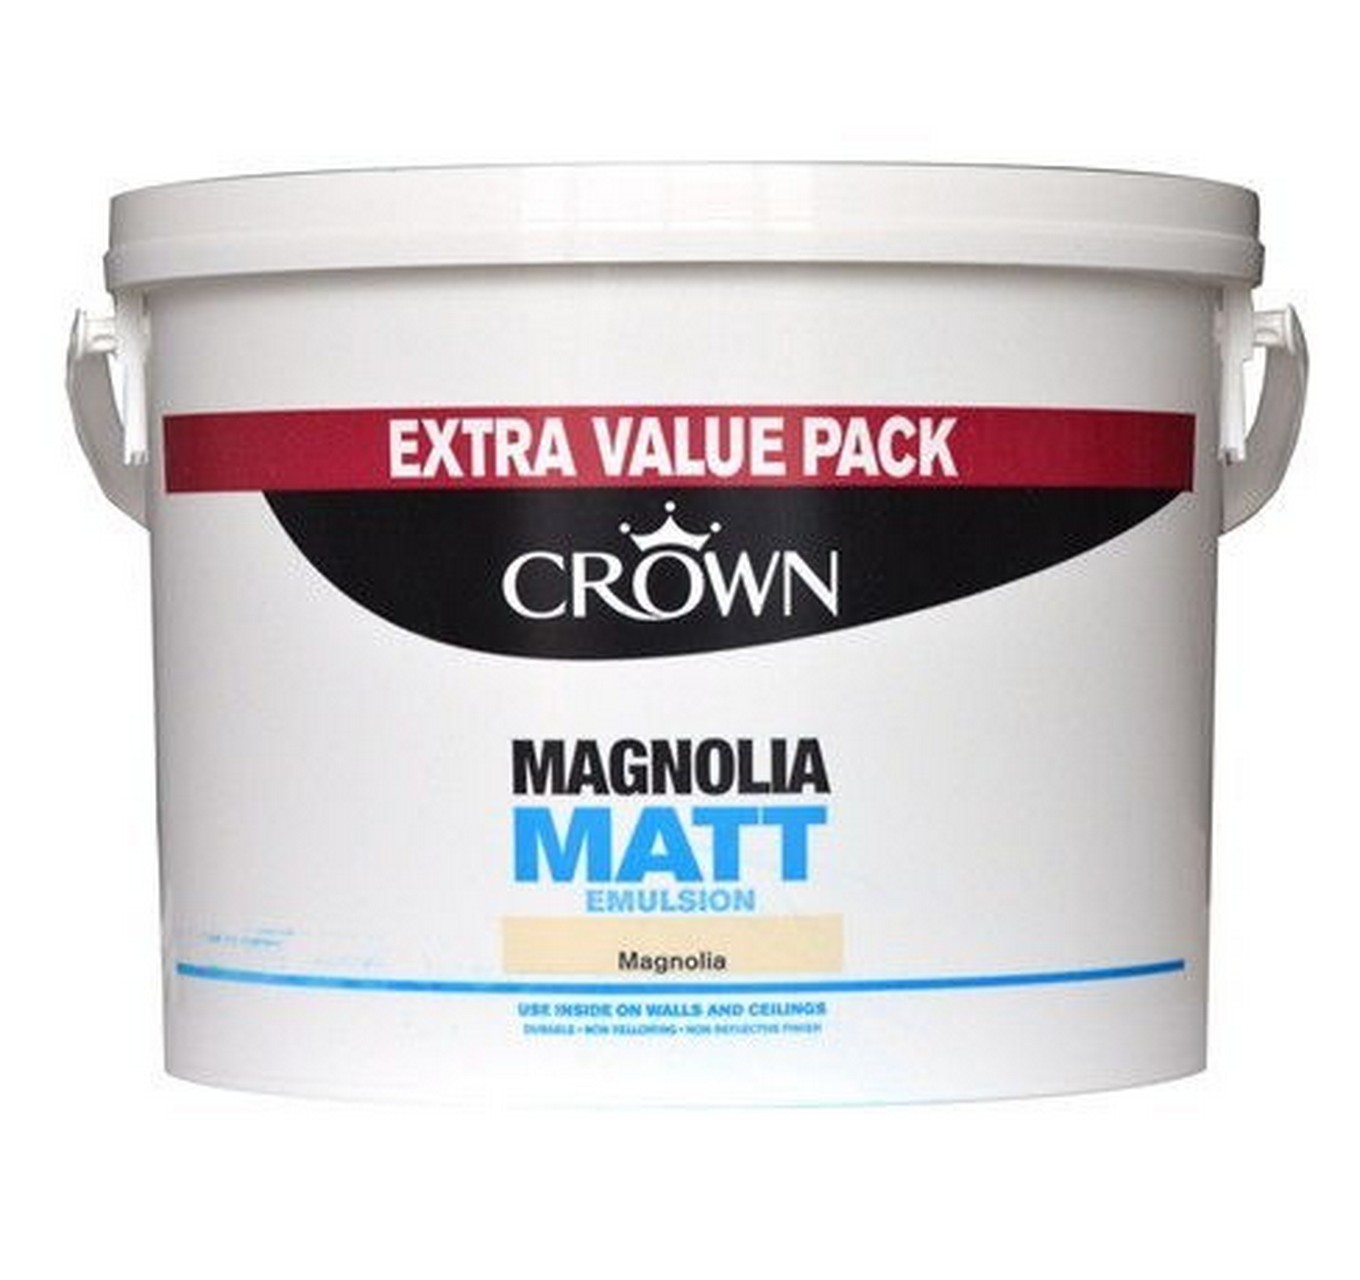 Matt Emulsion Magnolia 7.5L